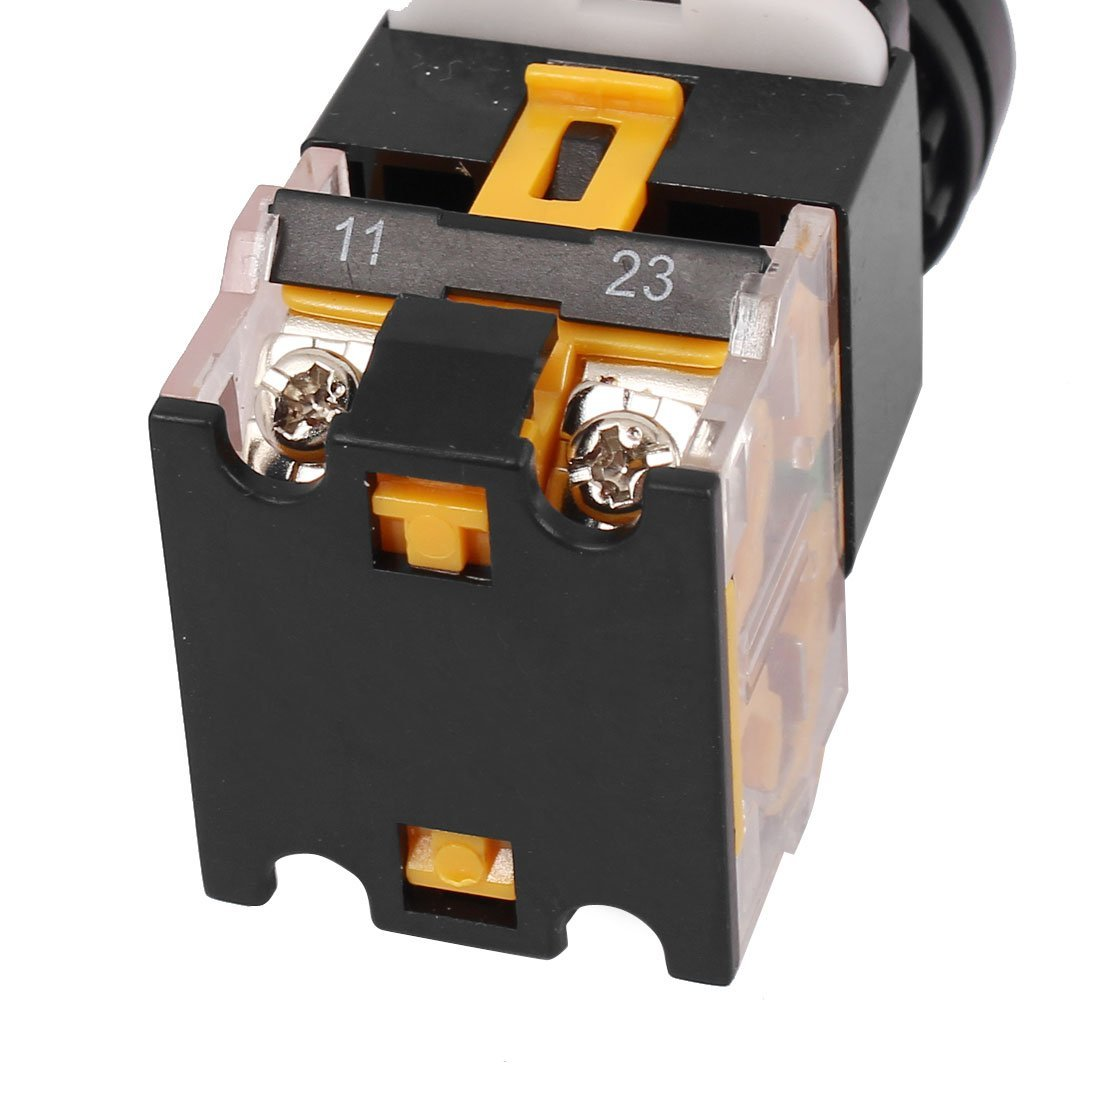 HLin 3Pcs LA38-203 AC 440V 10A 2 Position ON//Off Rotary Selector Switch Orange Selector Switch